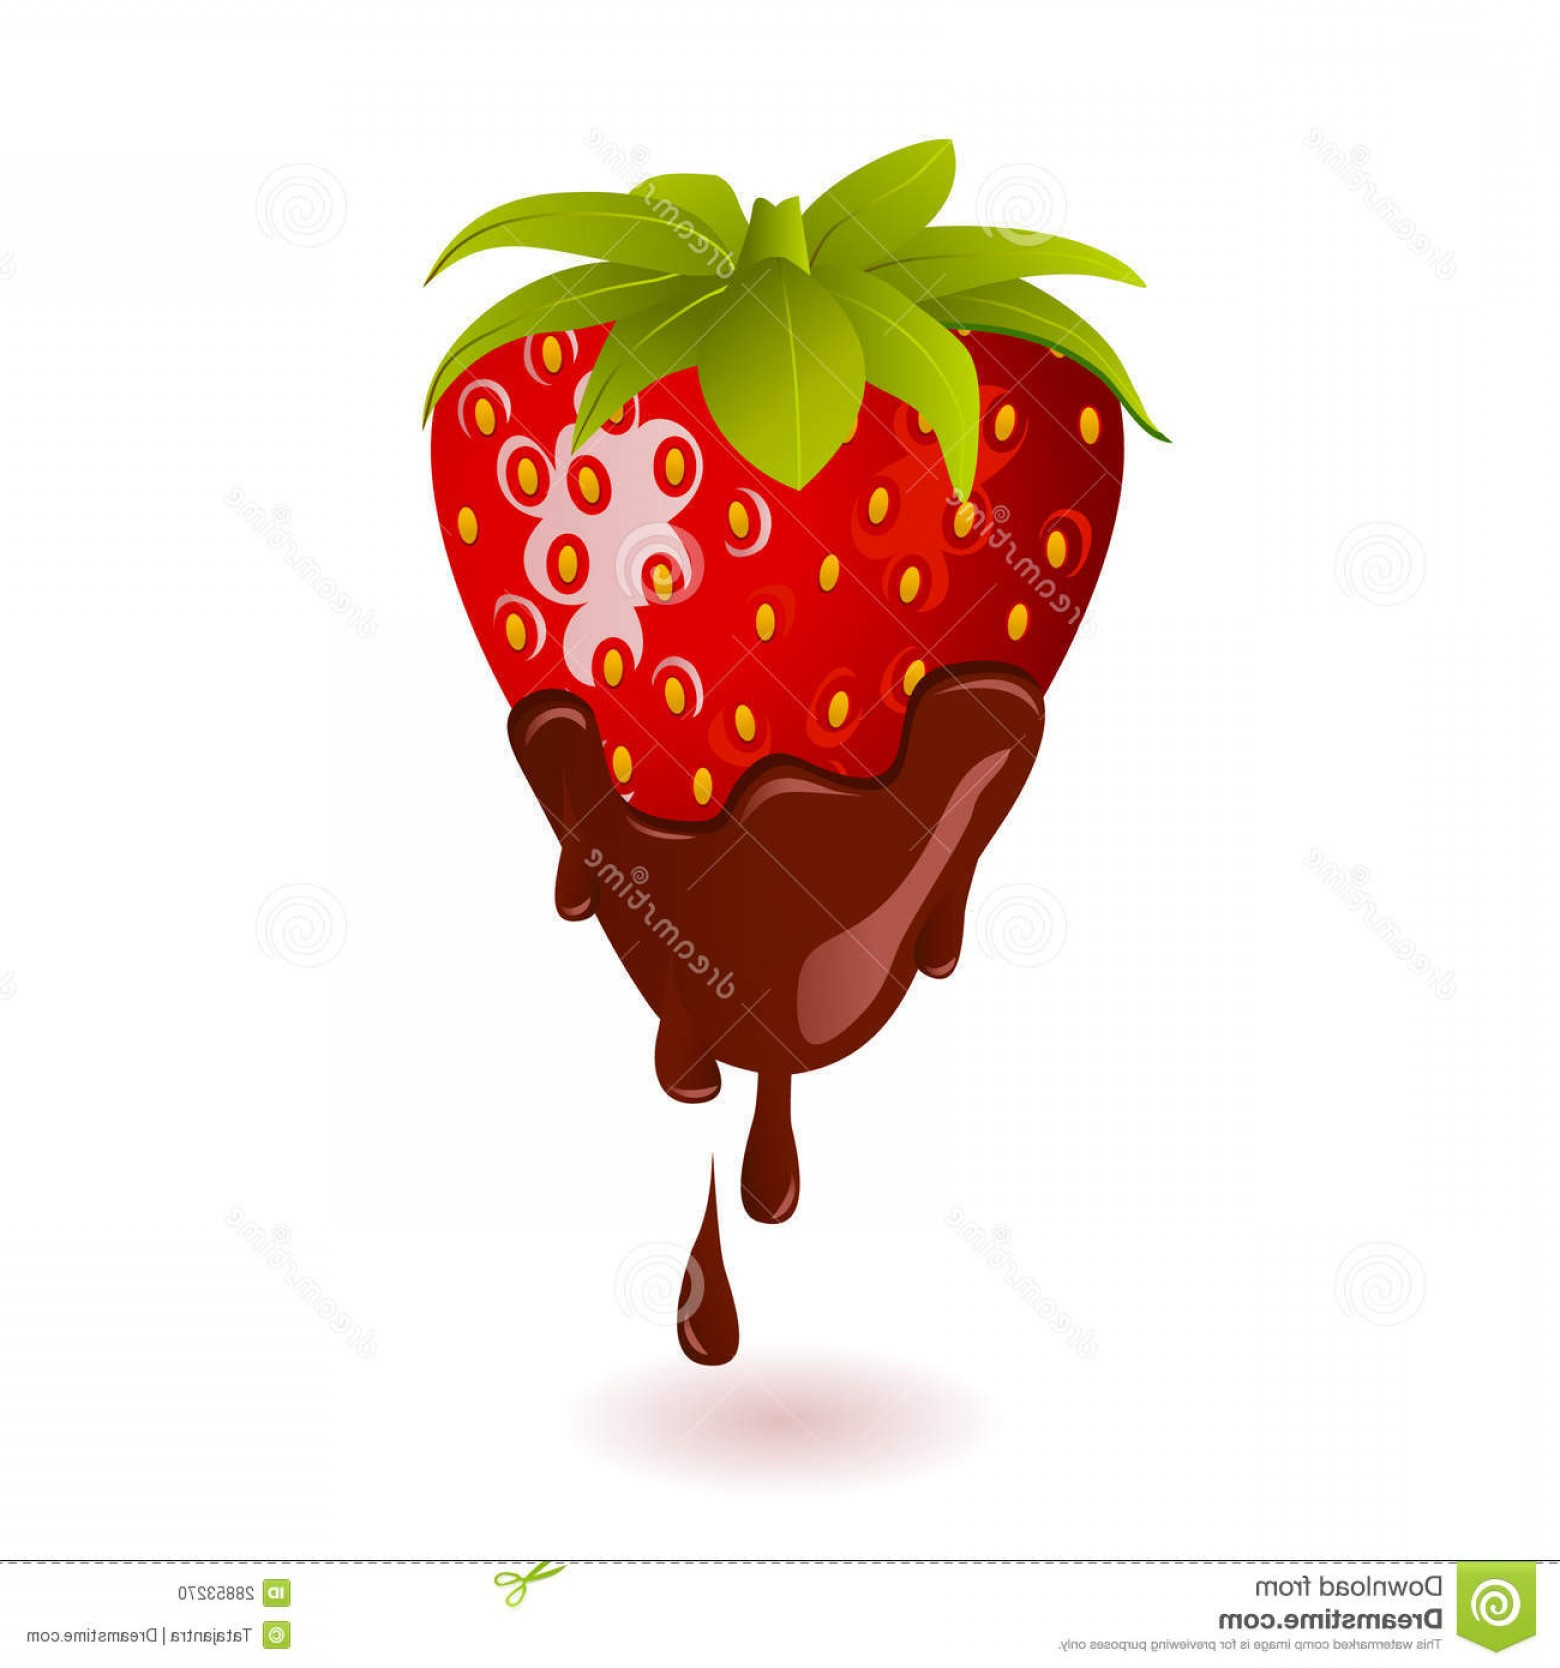 Chocolate Clip Art Vector: Stock Photo Chocolate Dipped Strawberry Image